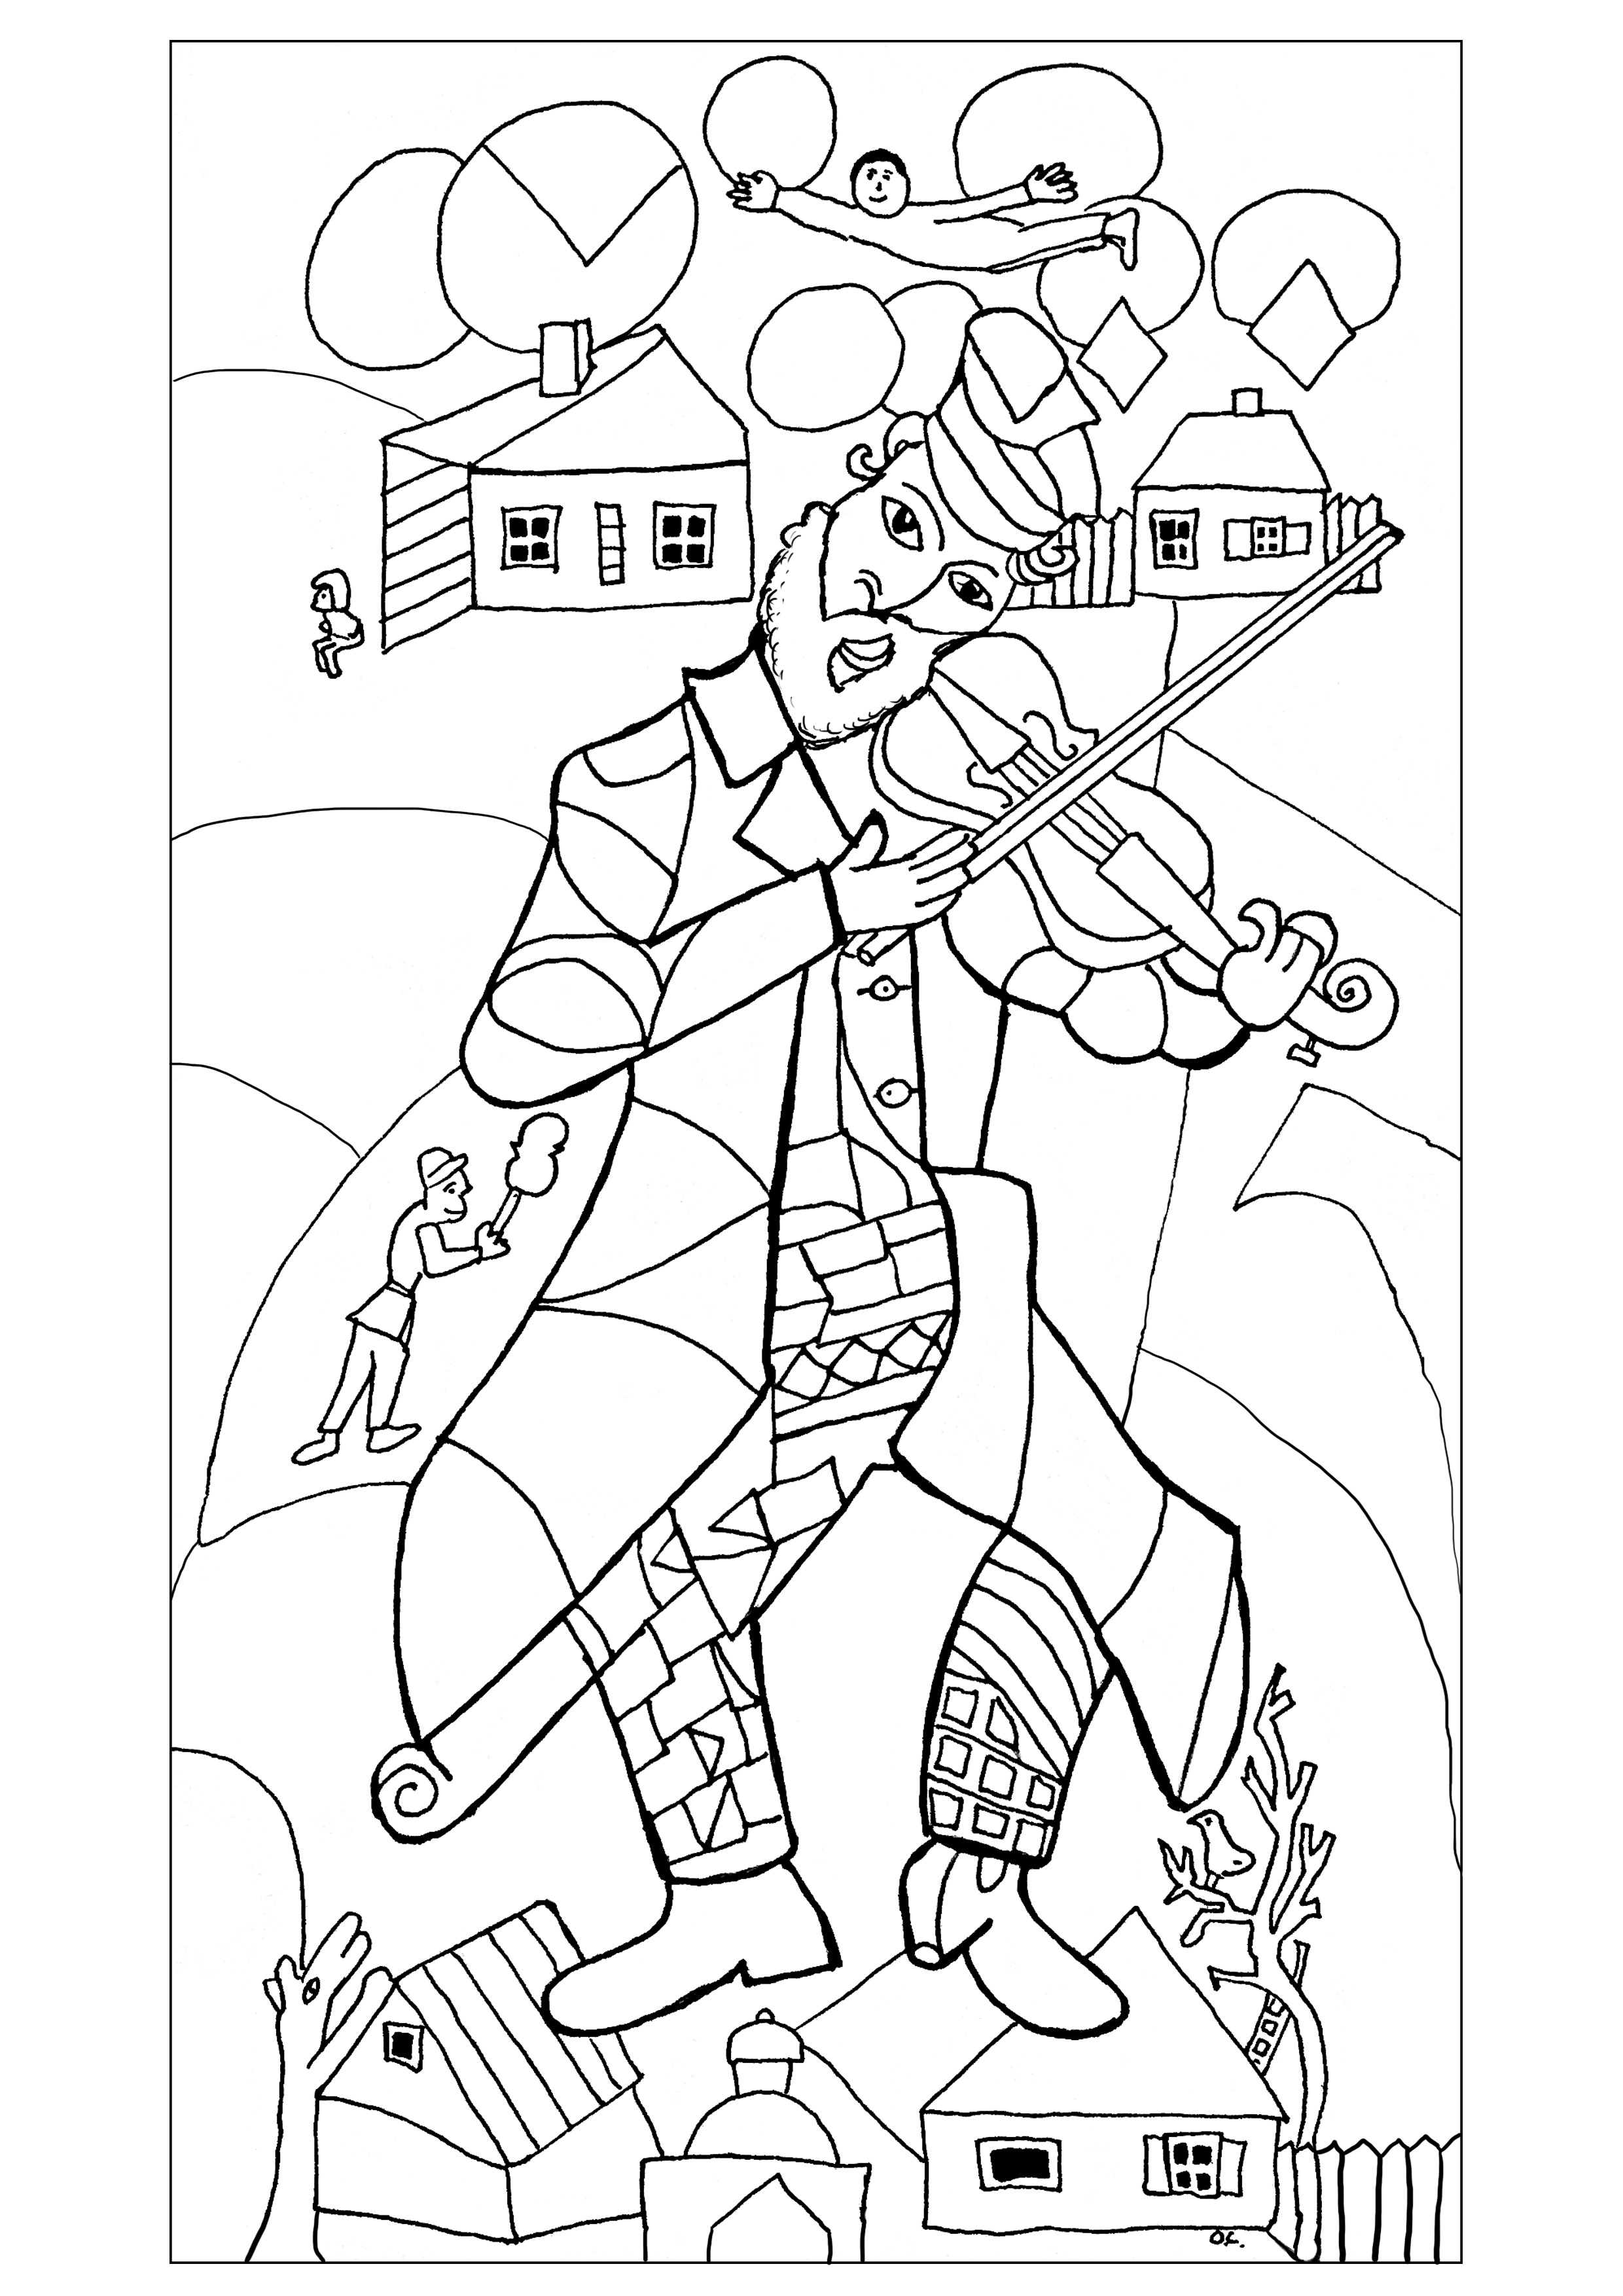 """coloring adult chagall the green violonist 1923 24 New York drawn by olivier """""""